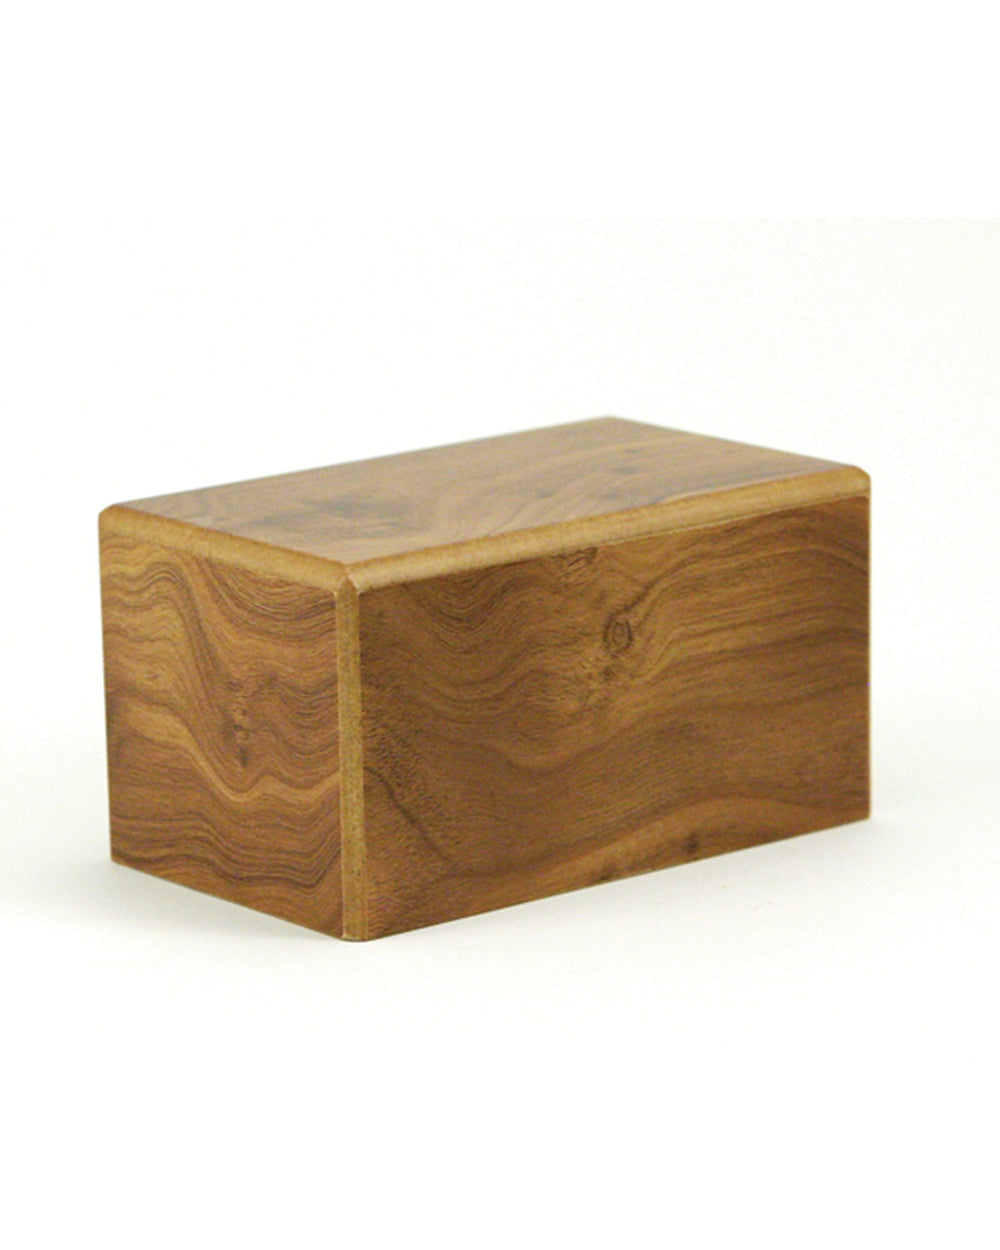 MDF Box Urns - Natural